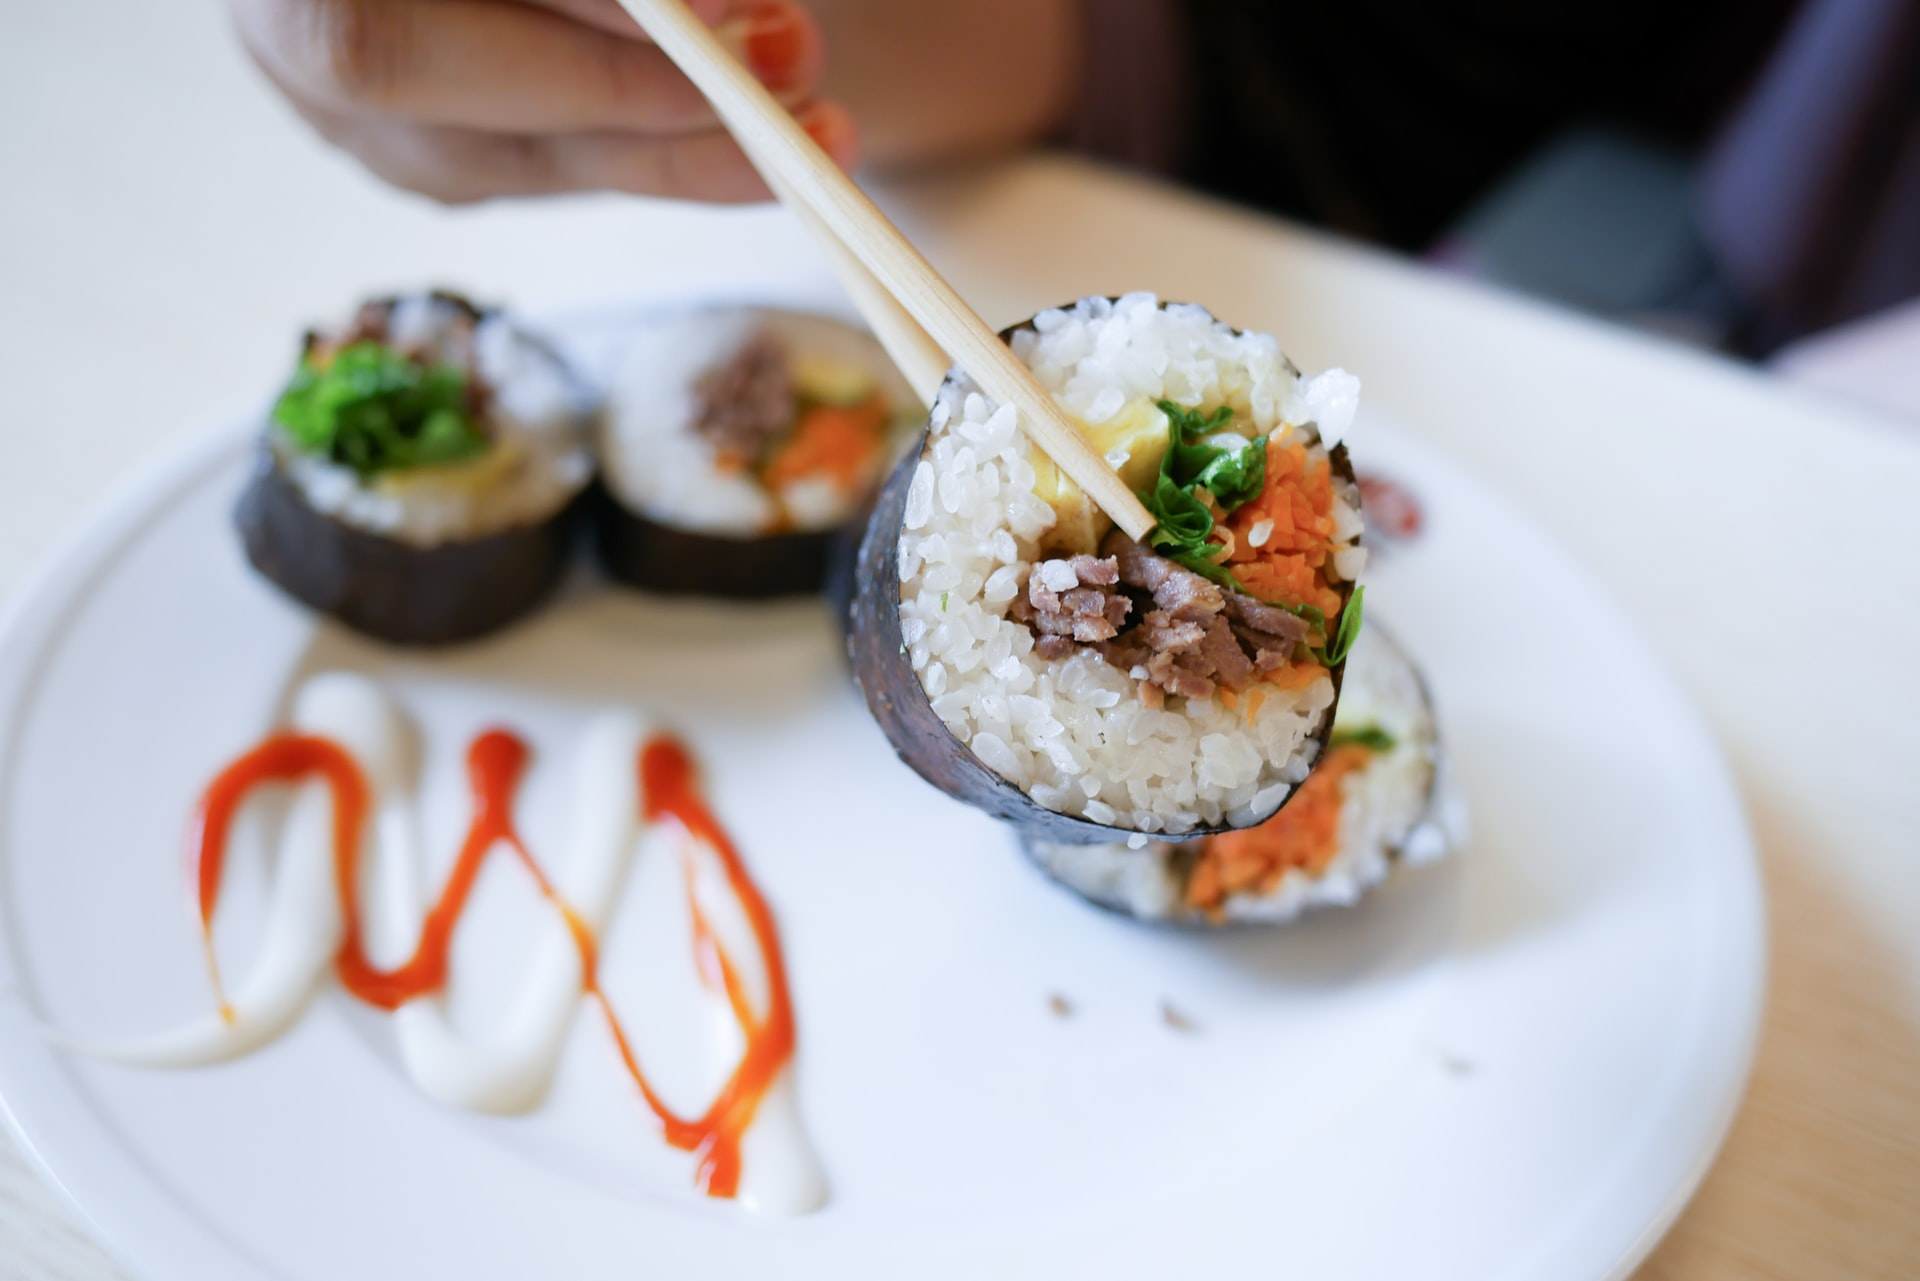 A roll of sushi being held in chopsticks over a plate of other sushi rolls